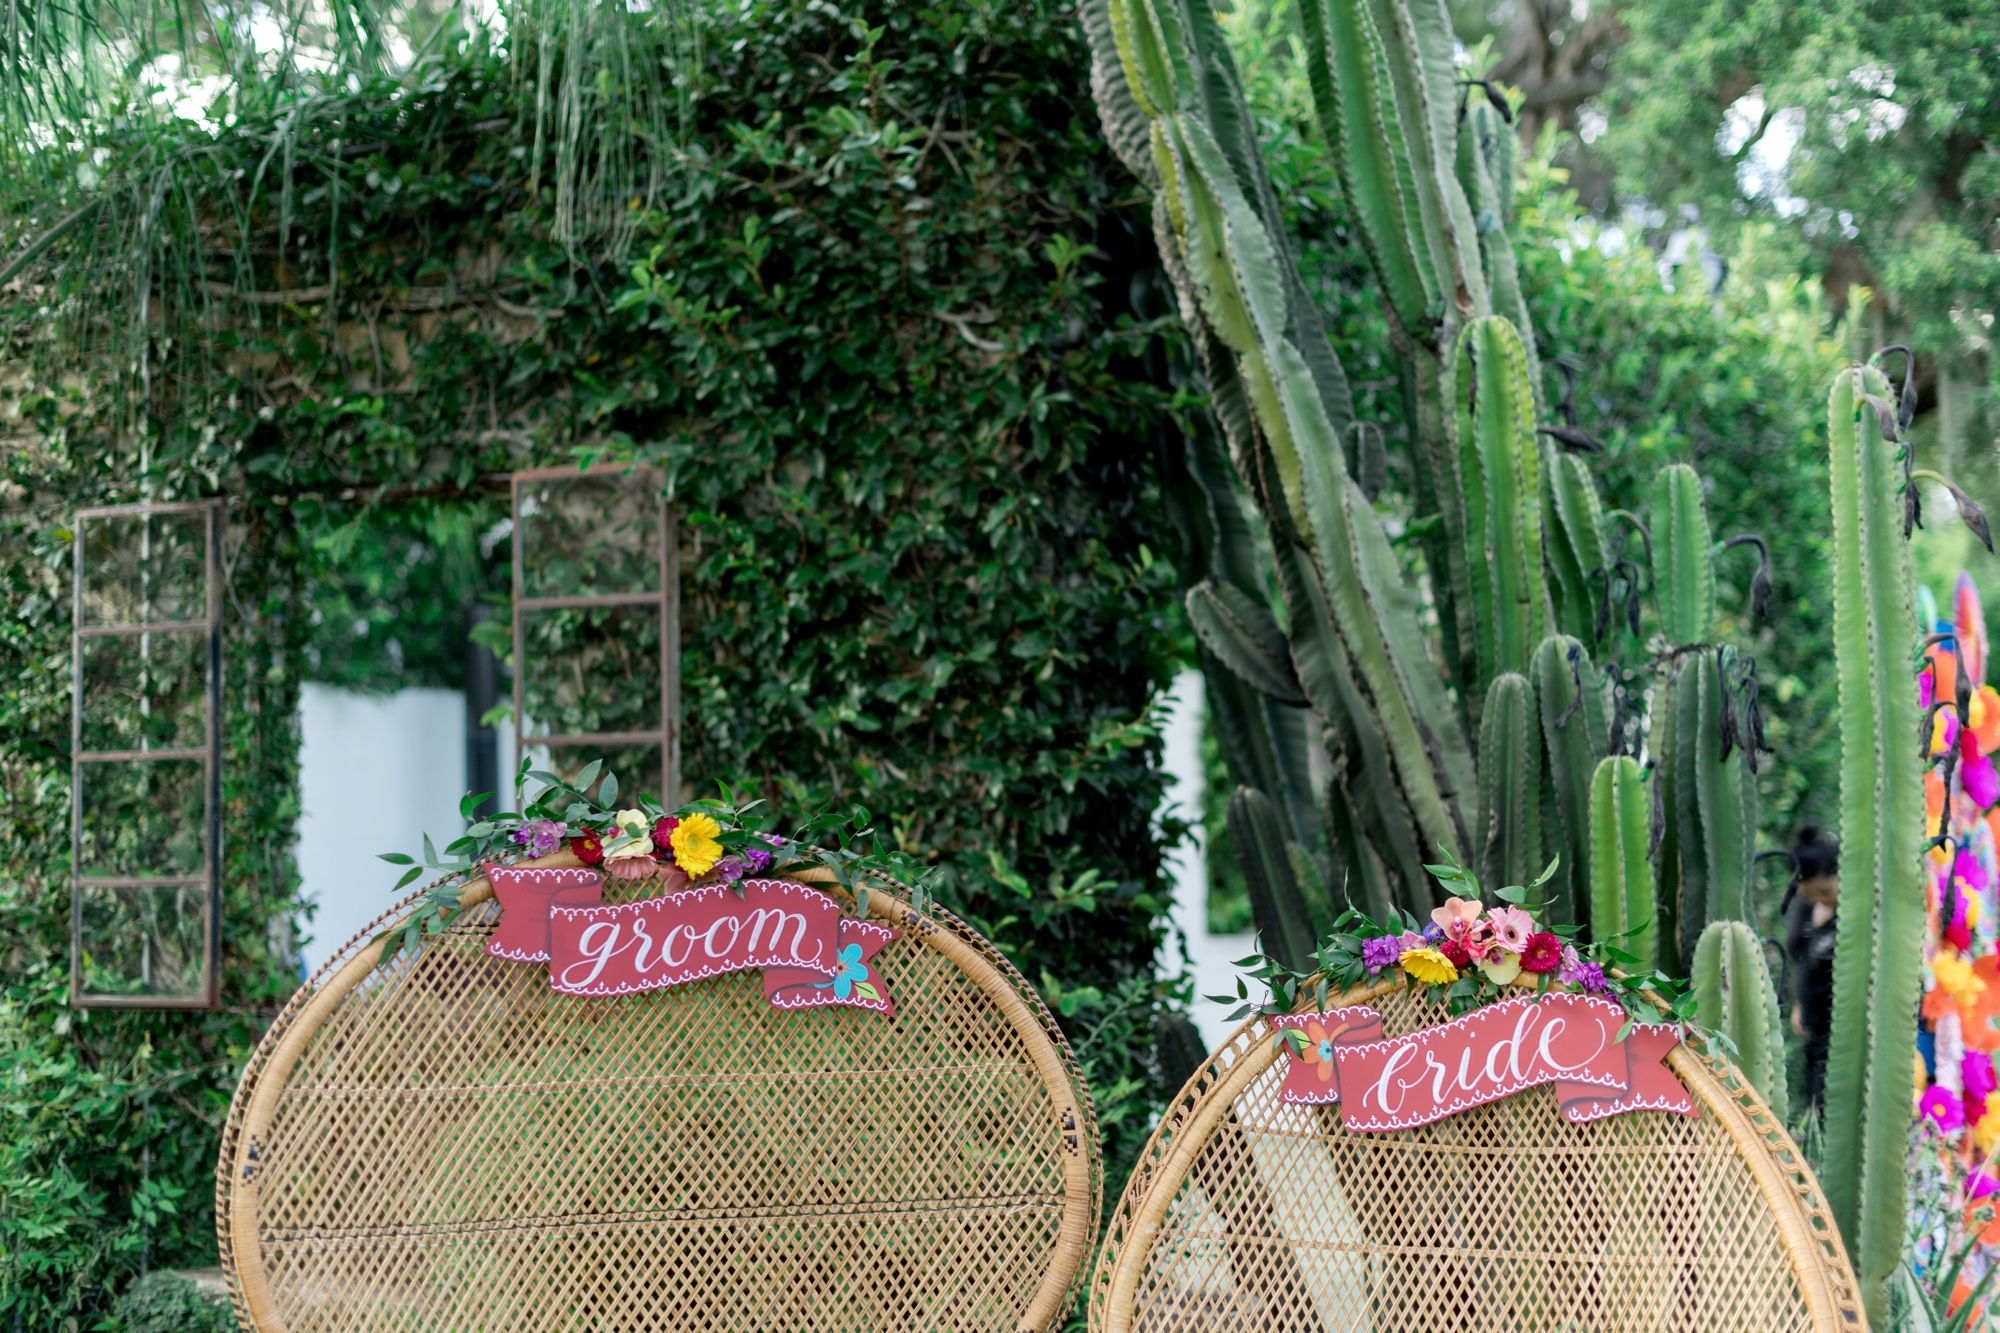 bride and groom signs spanish inspired